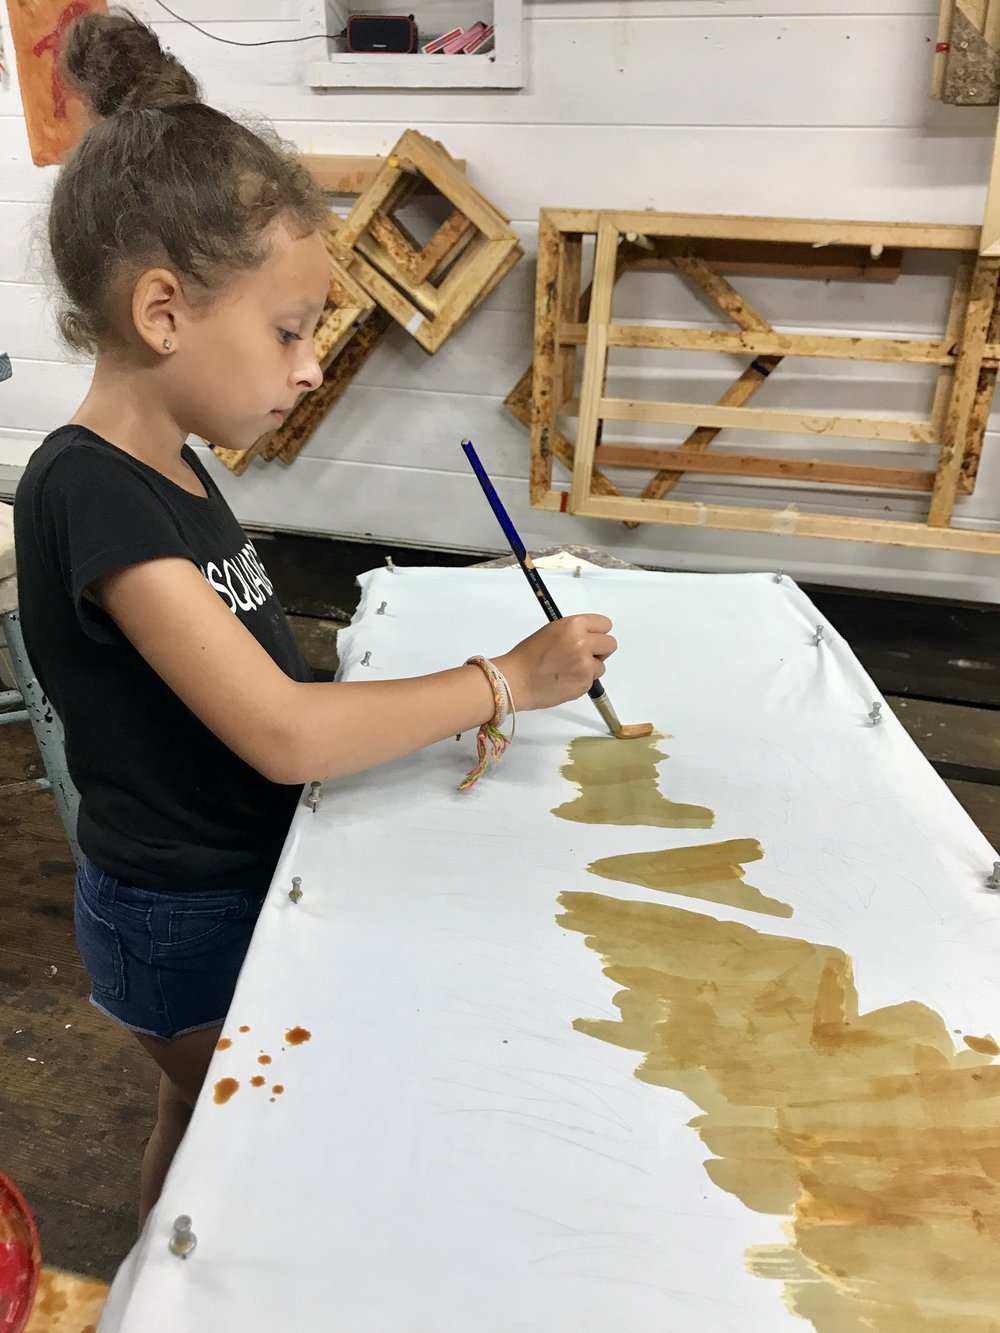 Painting wax on fabric.